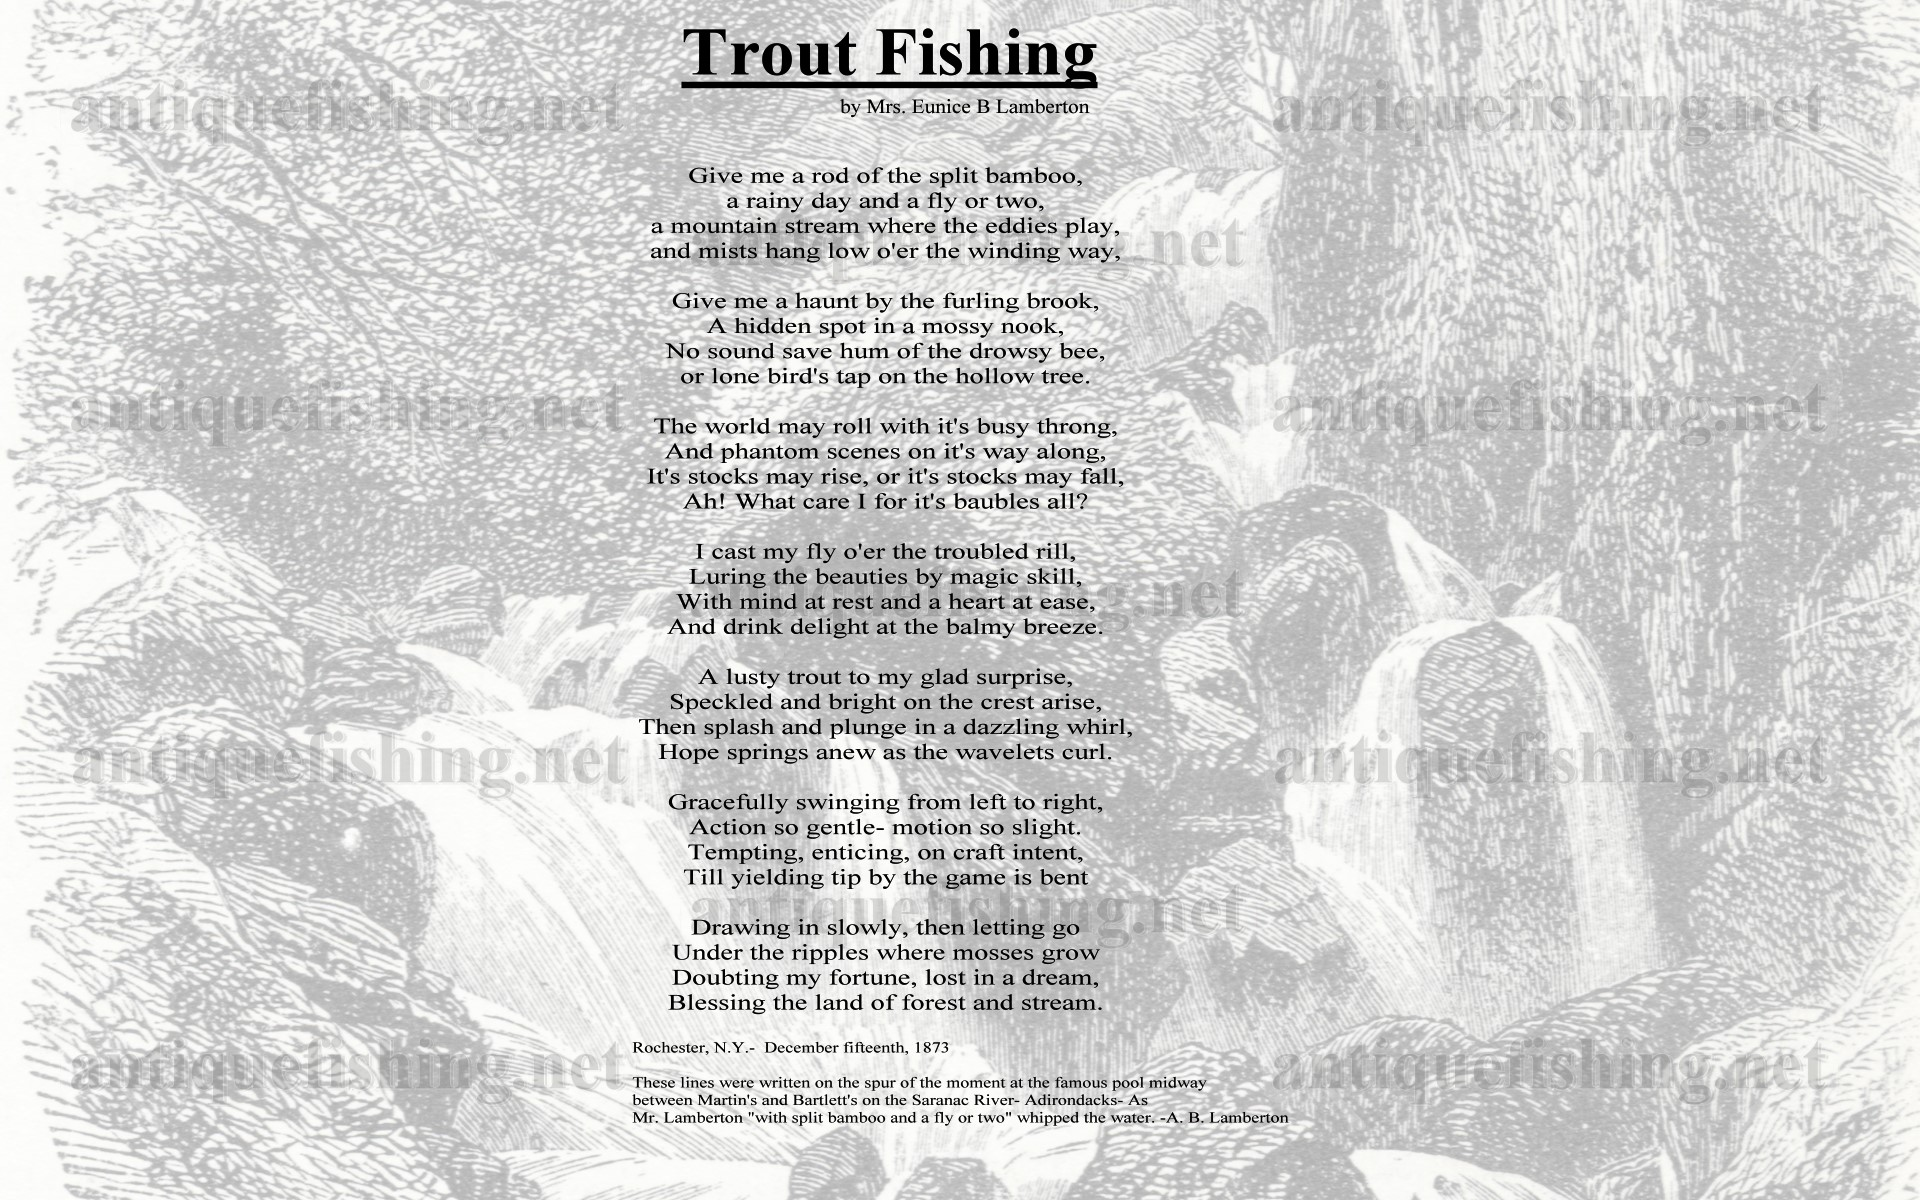 Flyfishing poem trout fishing for Poems about fishing in heaven